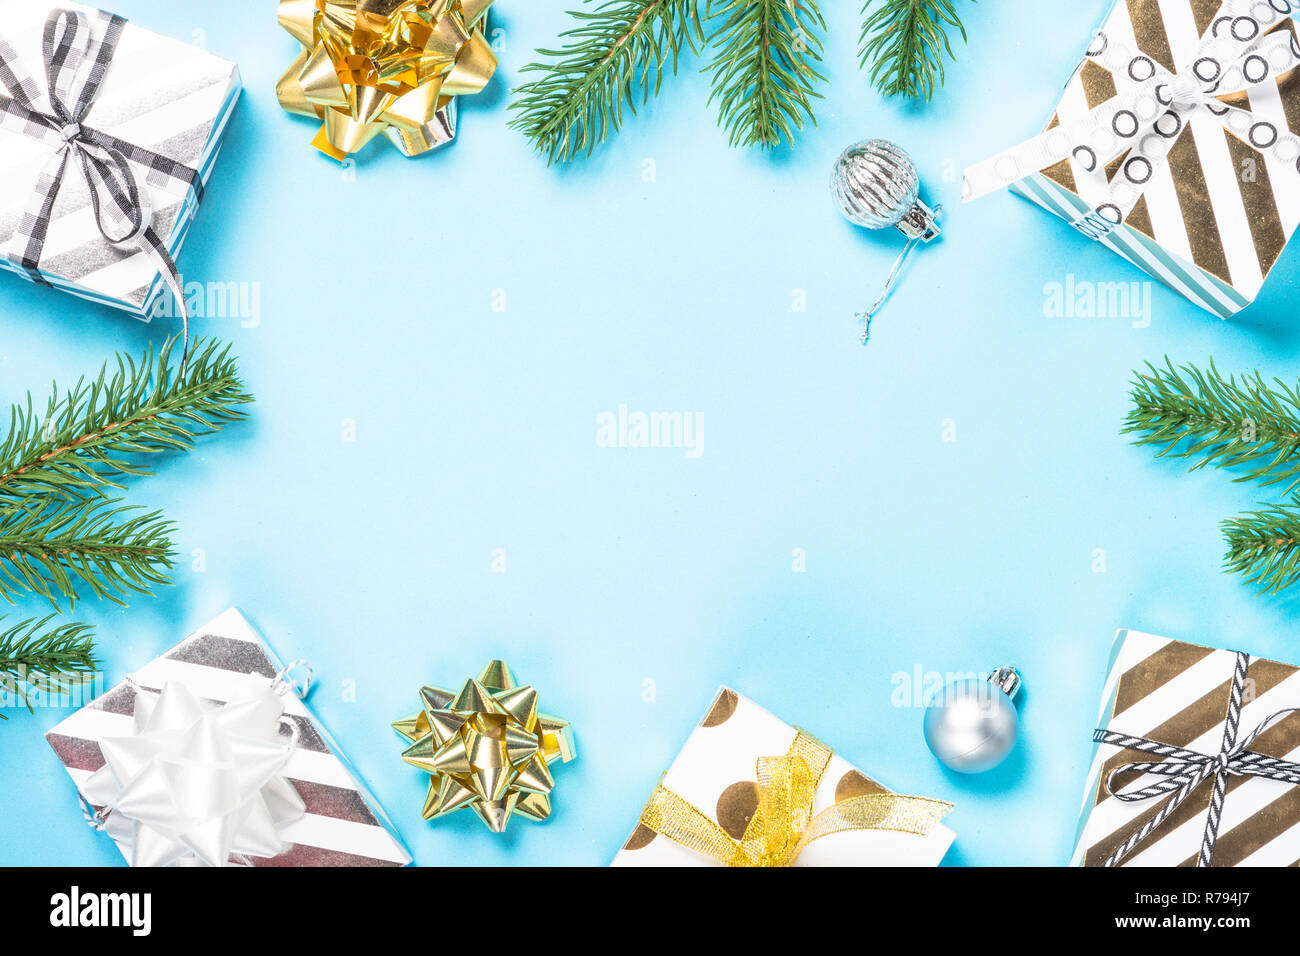 Christmas flatlay background - silver and gold decorations on bl - Stock Image